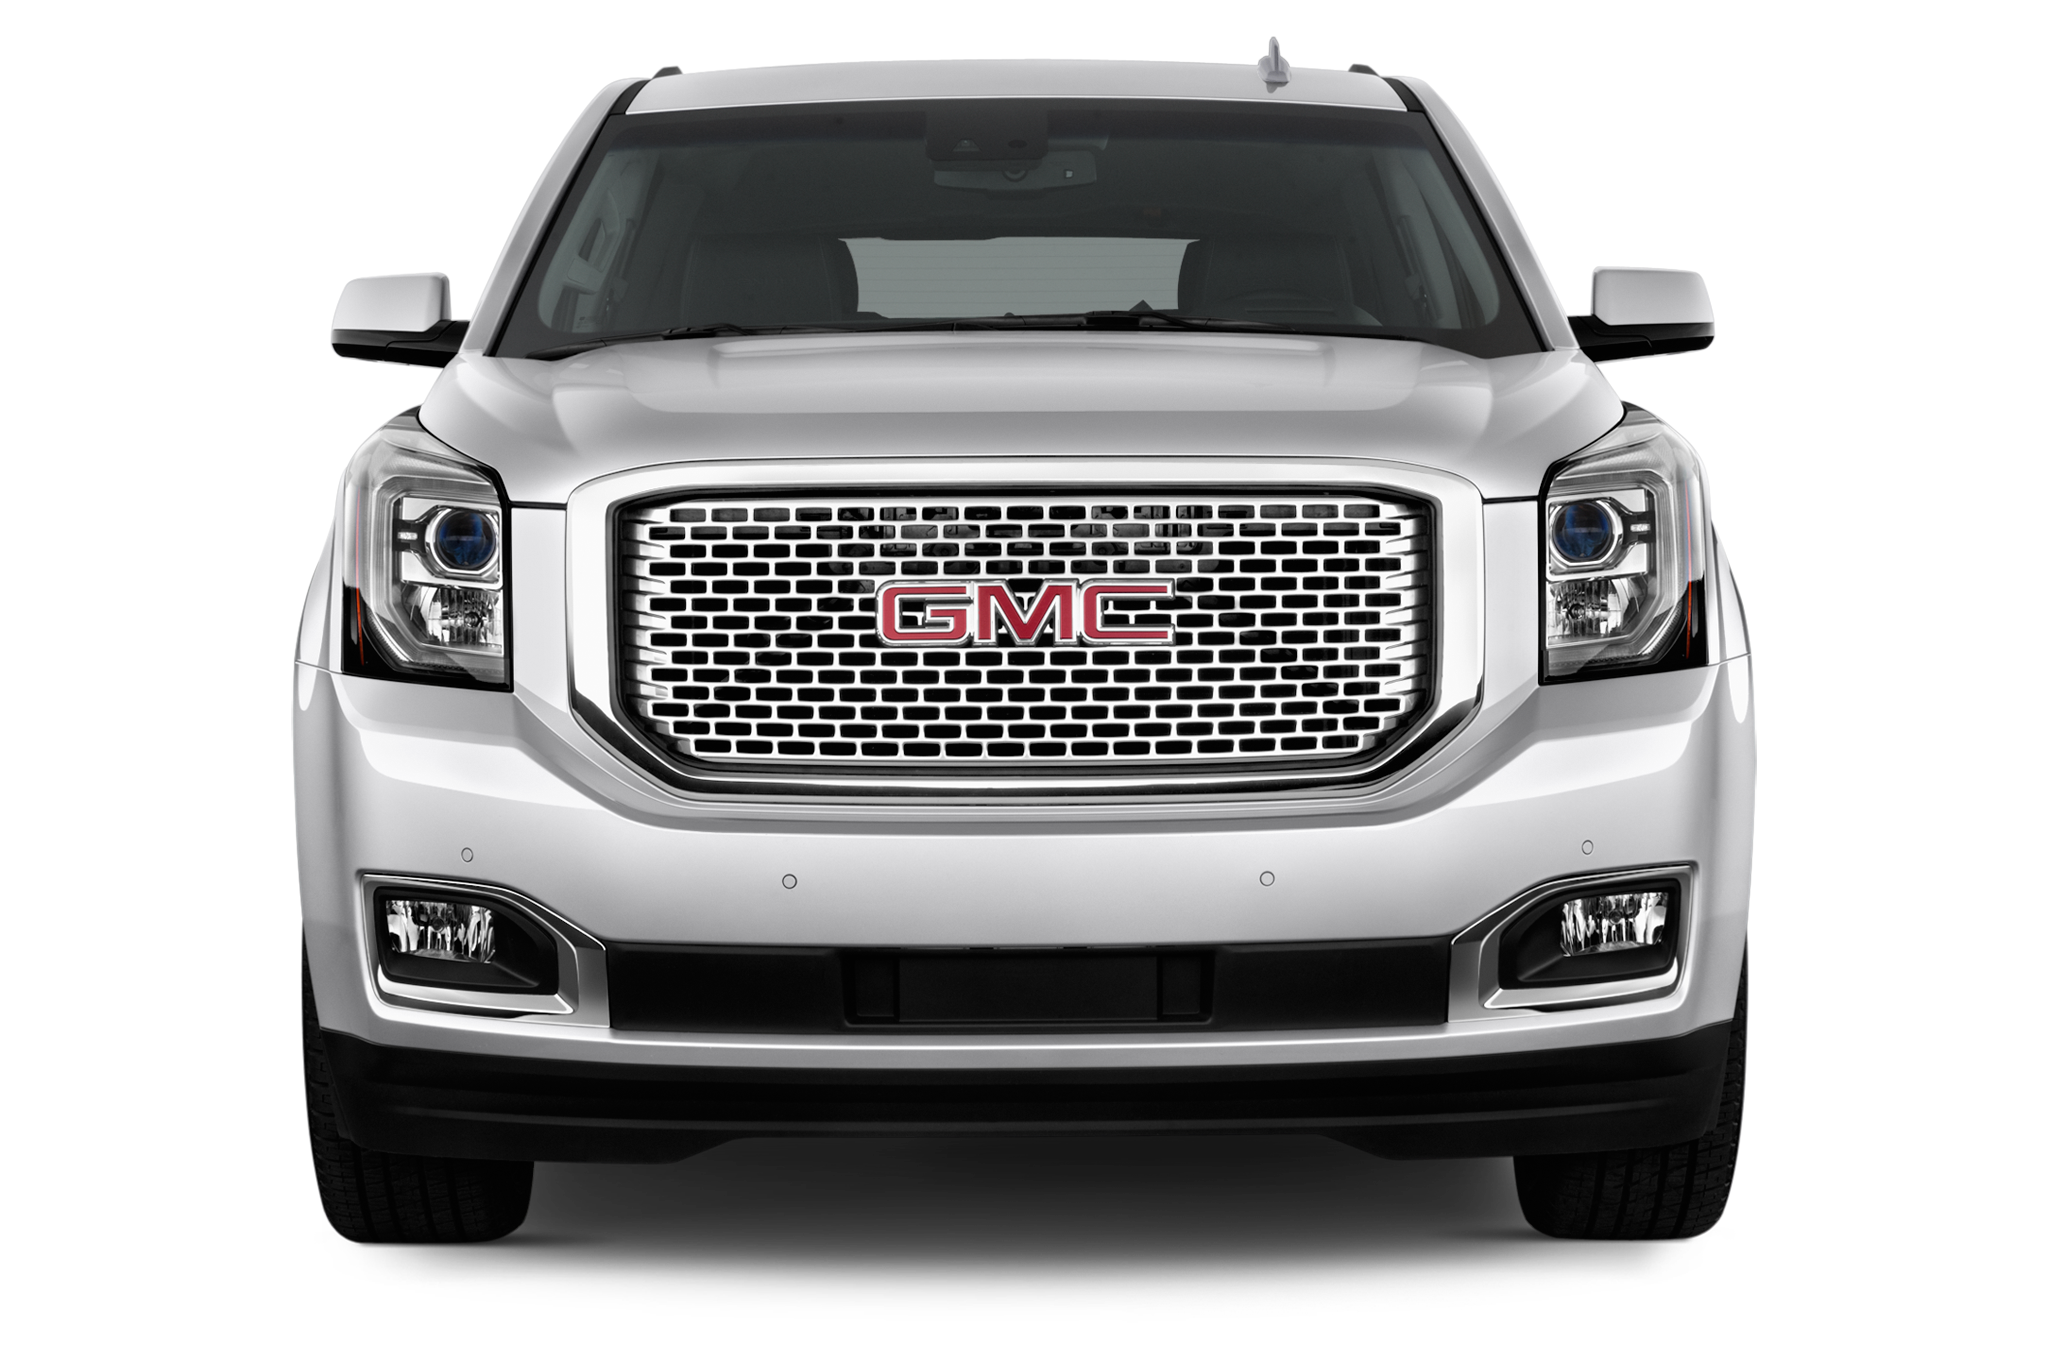 2019 Gmc Yukon Denali >> 2016 GMC Yukon SLT Premium Gets the Denali Styling Treatment